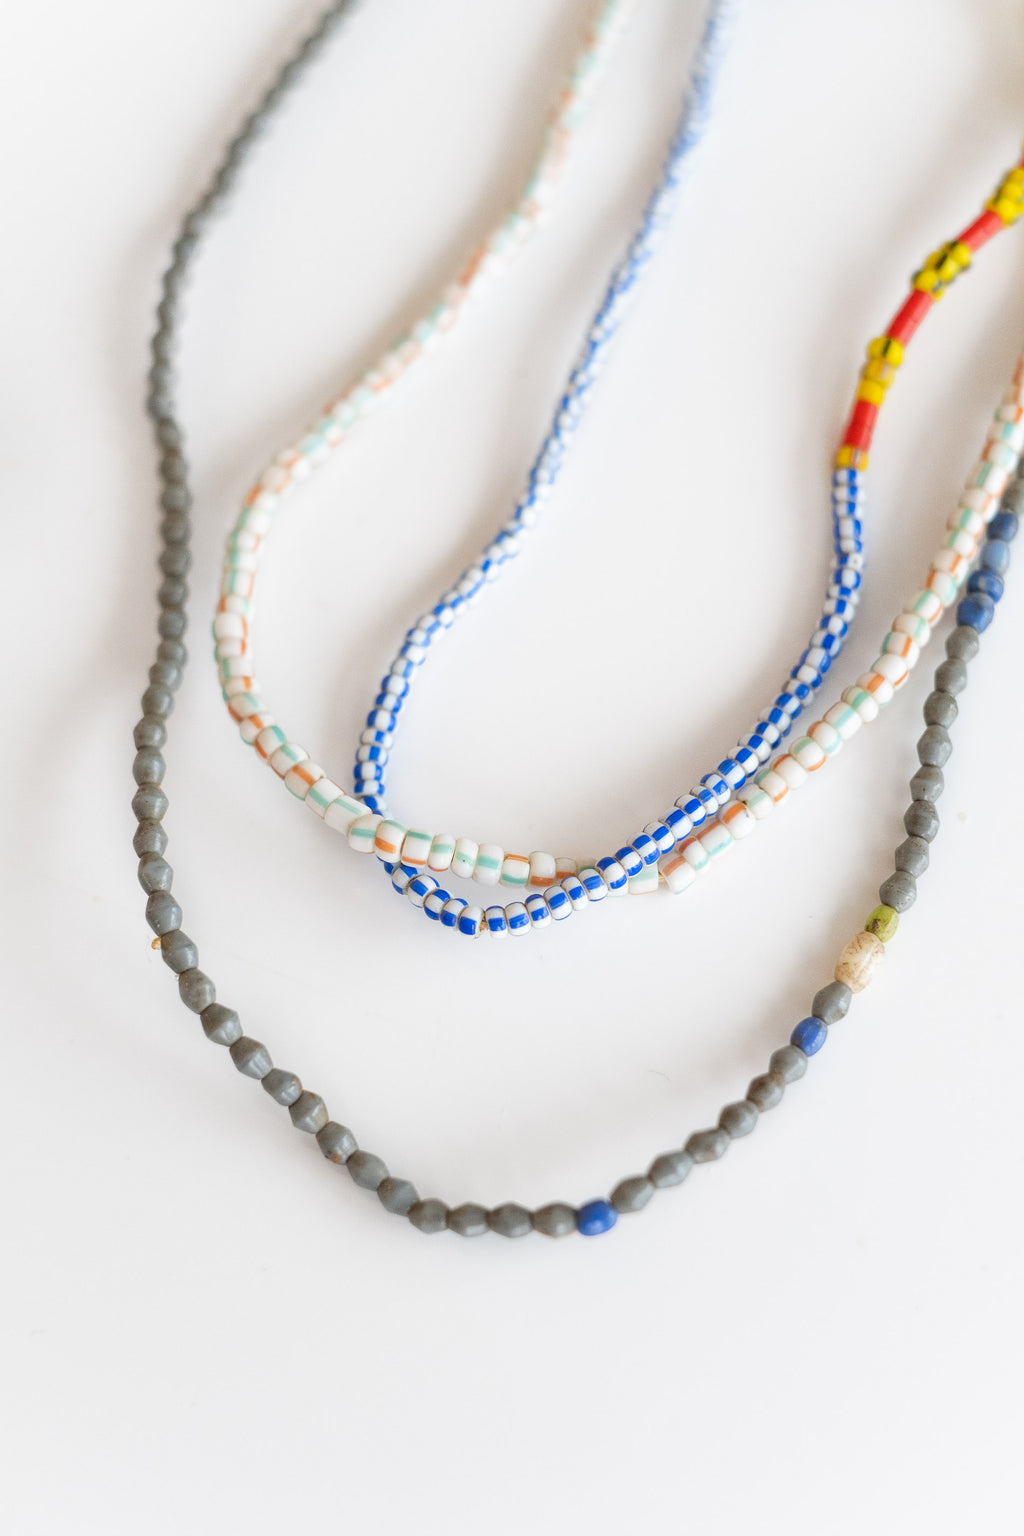 3-STRAND AFRICAN BEADS NO. 5